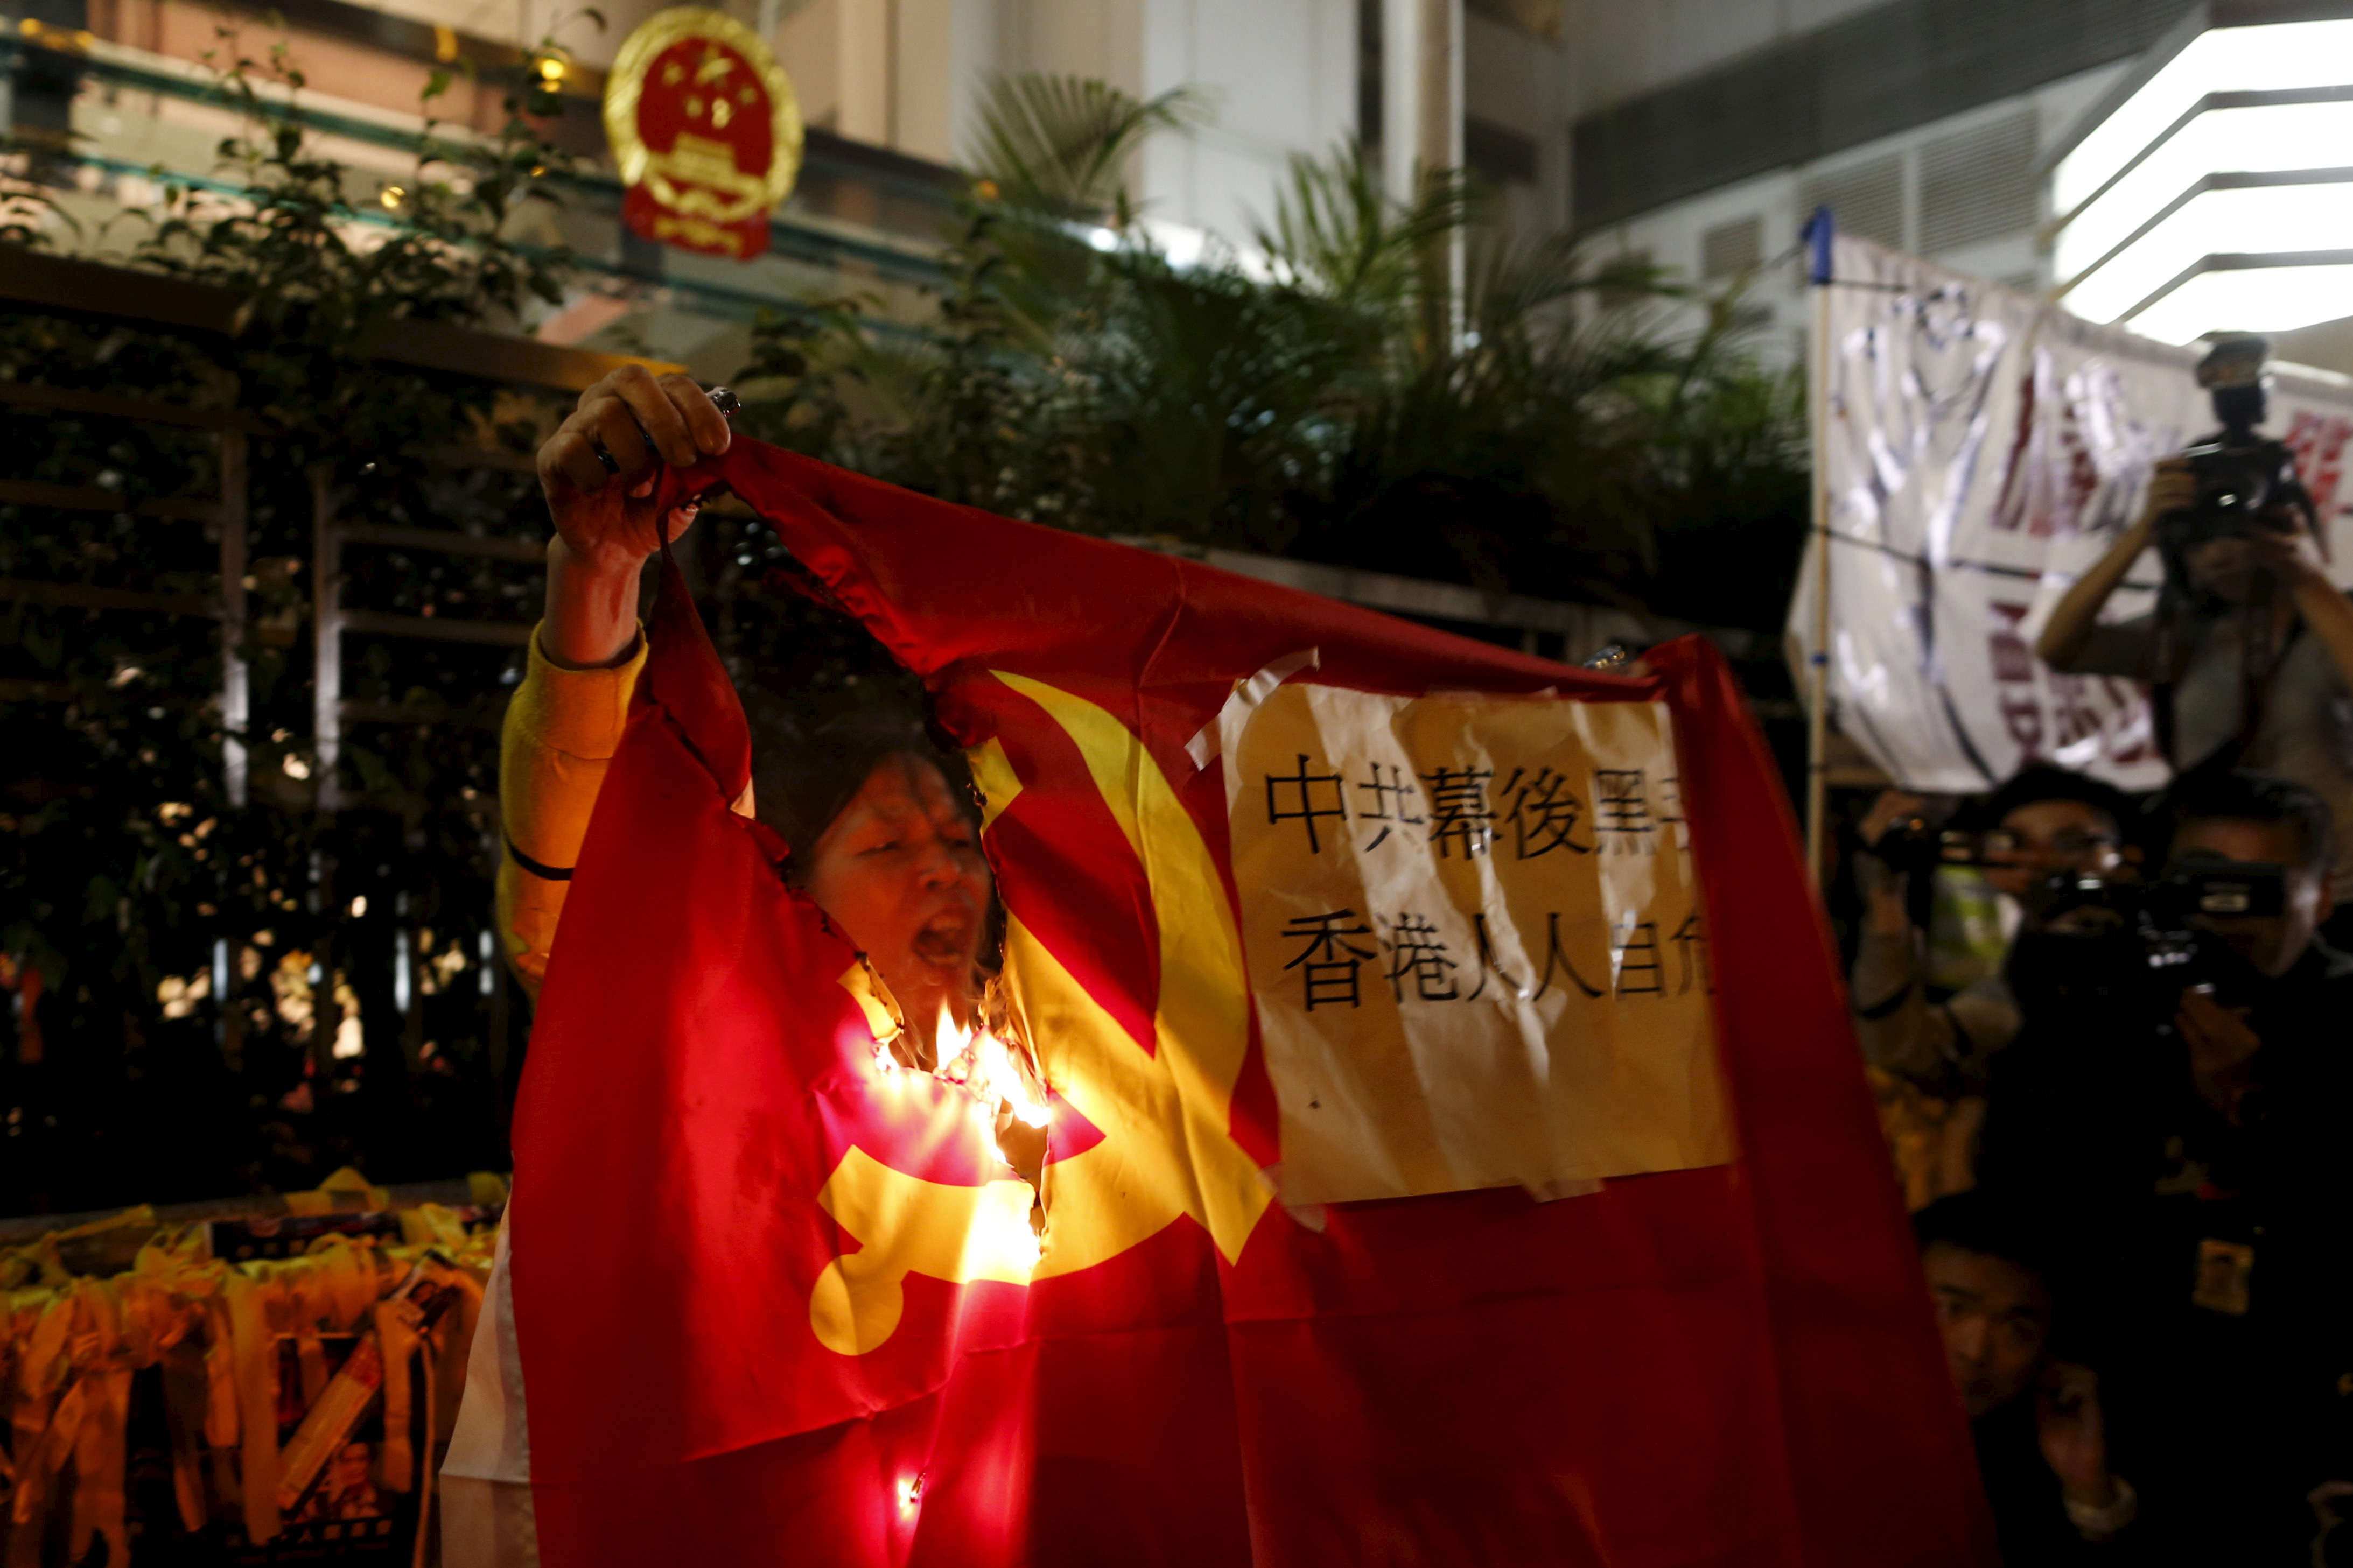 A demonstrator burns a flag of the Chinese Communist Party during a protest over the disappearance of booksellers, outside the Chinese Liaison Office in Hong Kong on Jan. 10, 2016